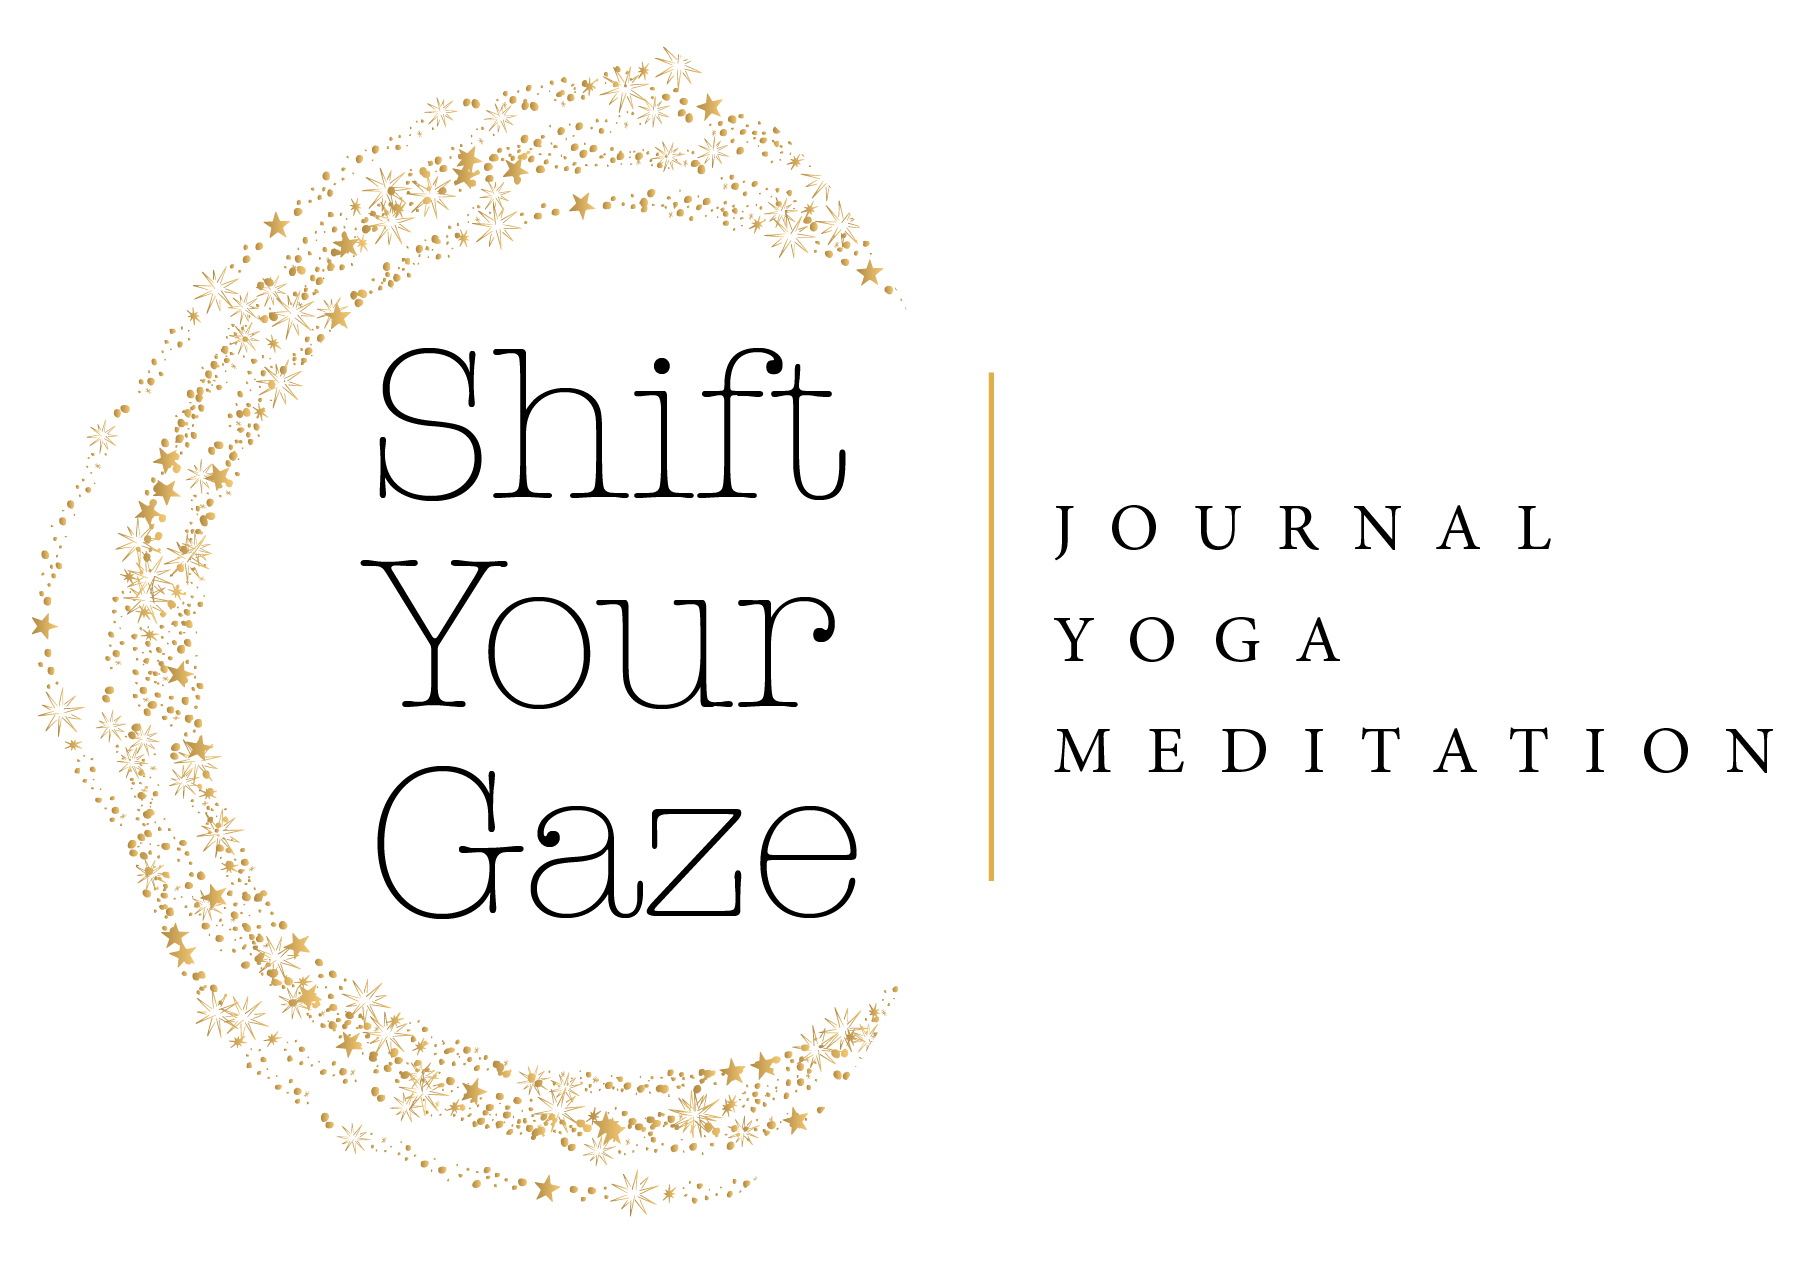 Shift Your Gaze